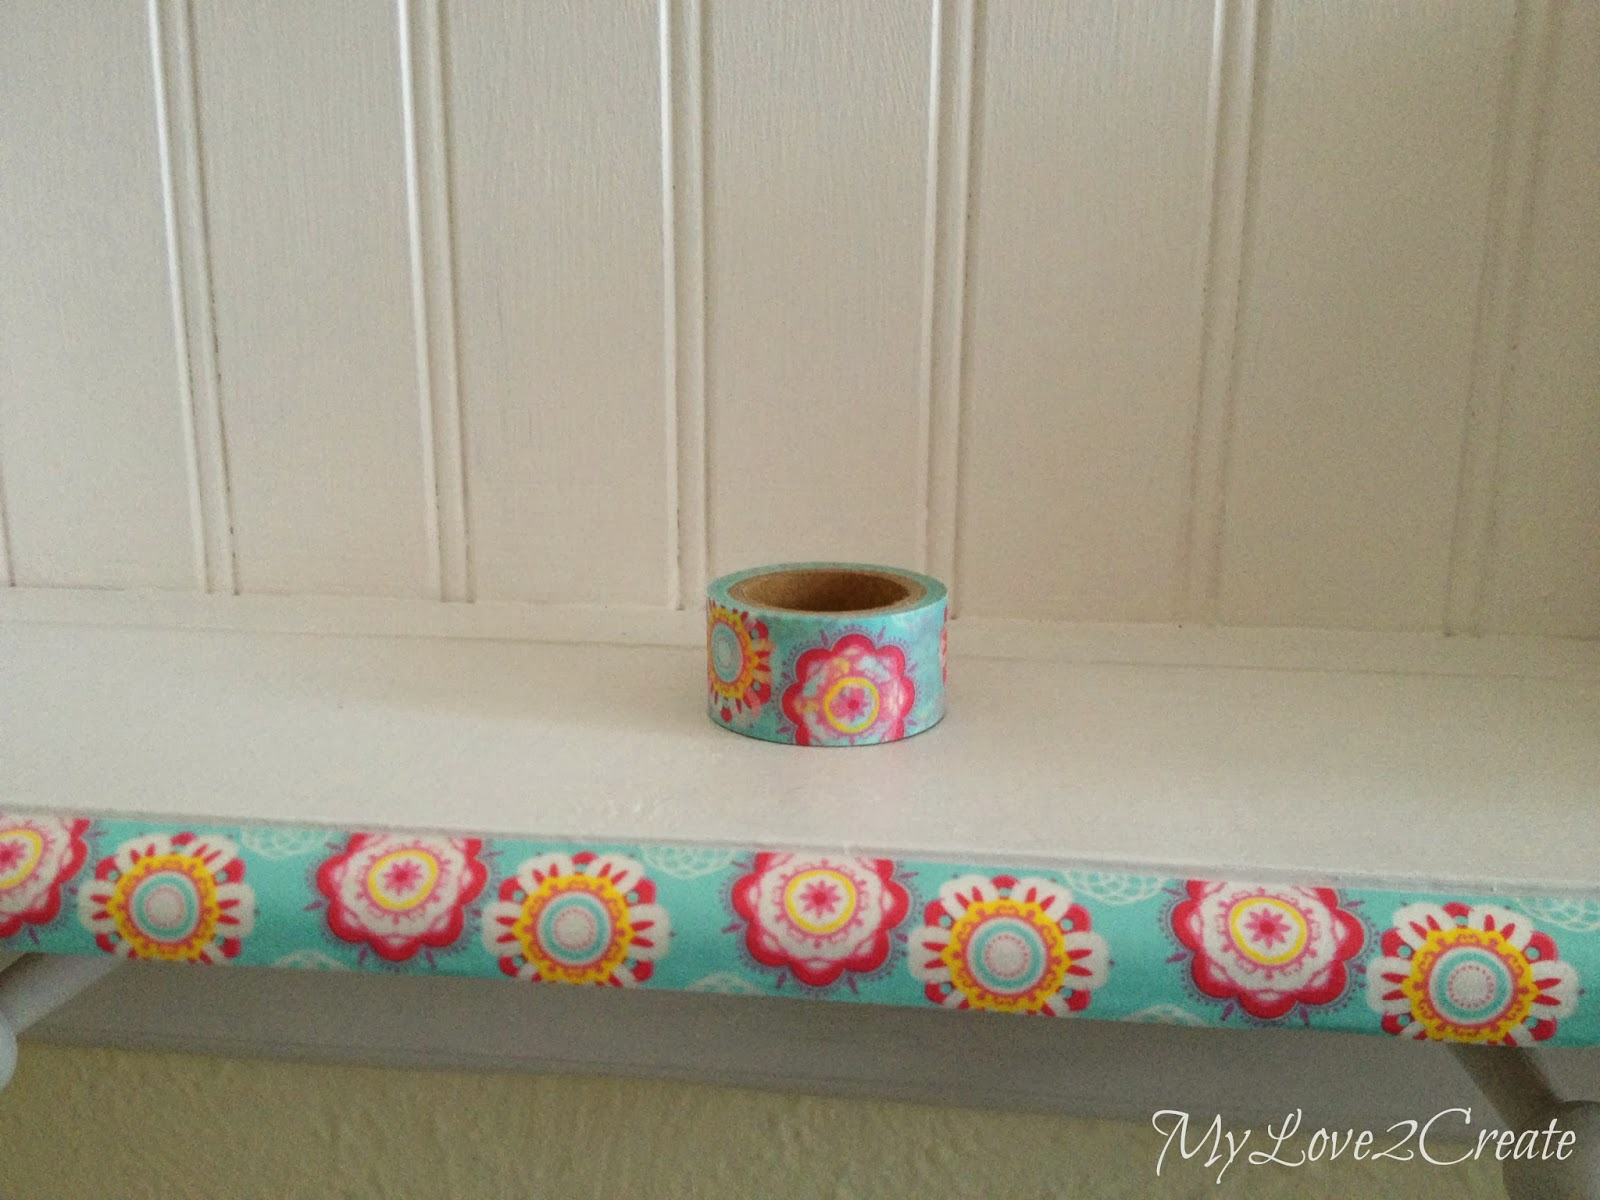 Adding washi tape for a fun pop of color